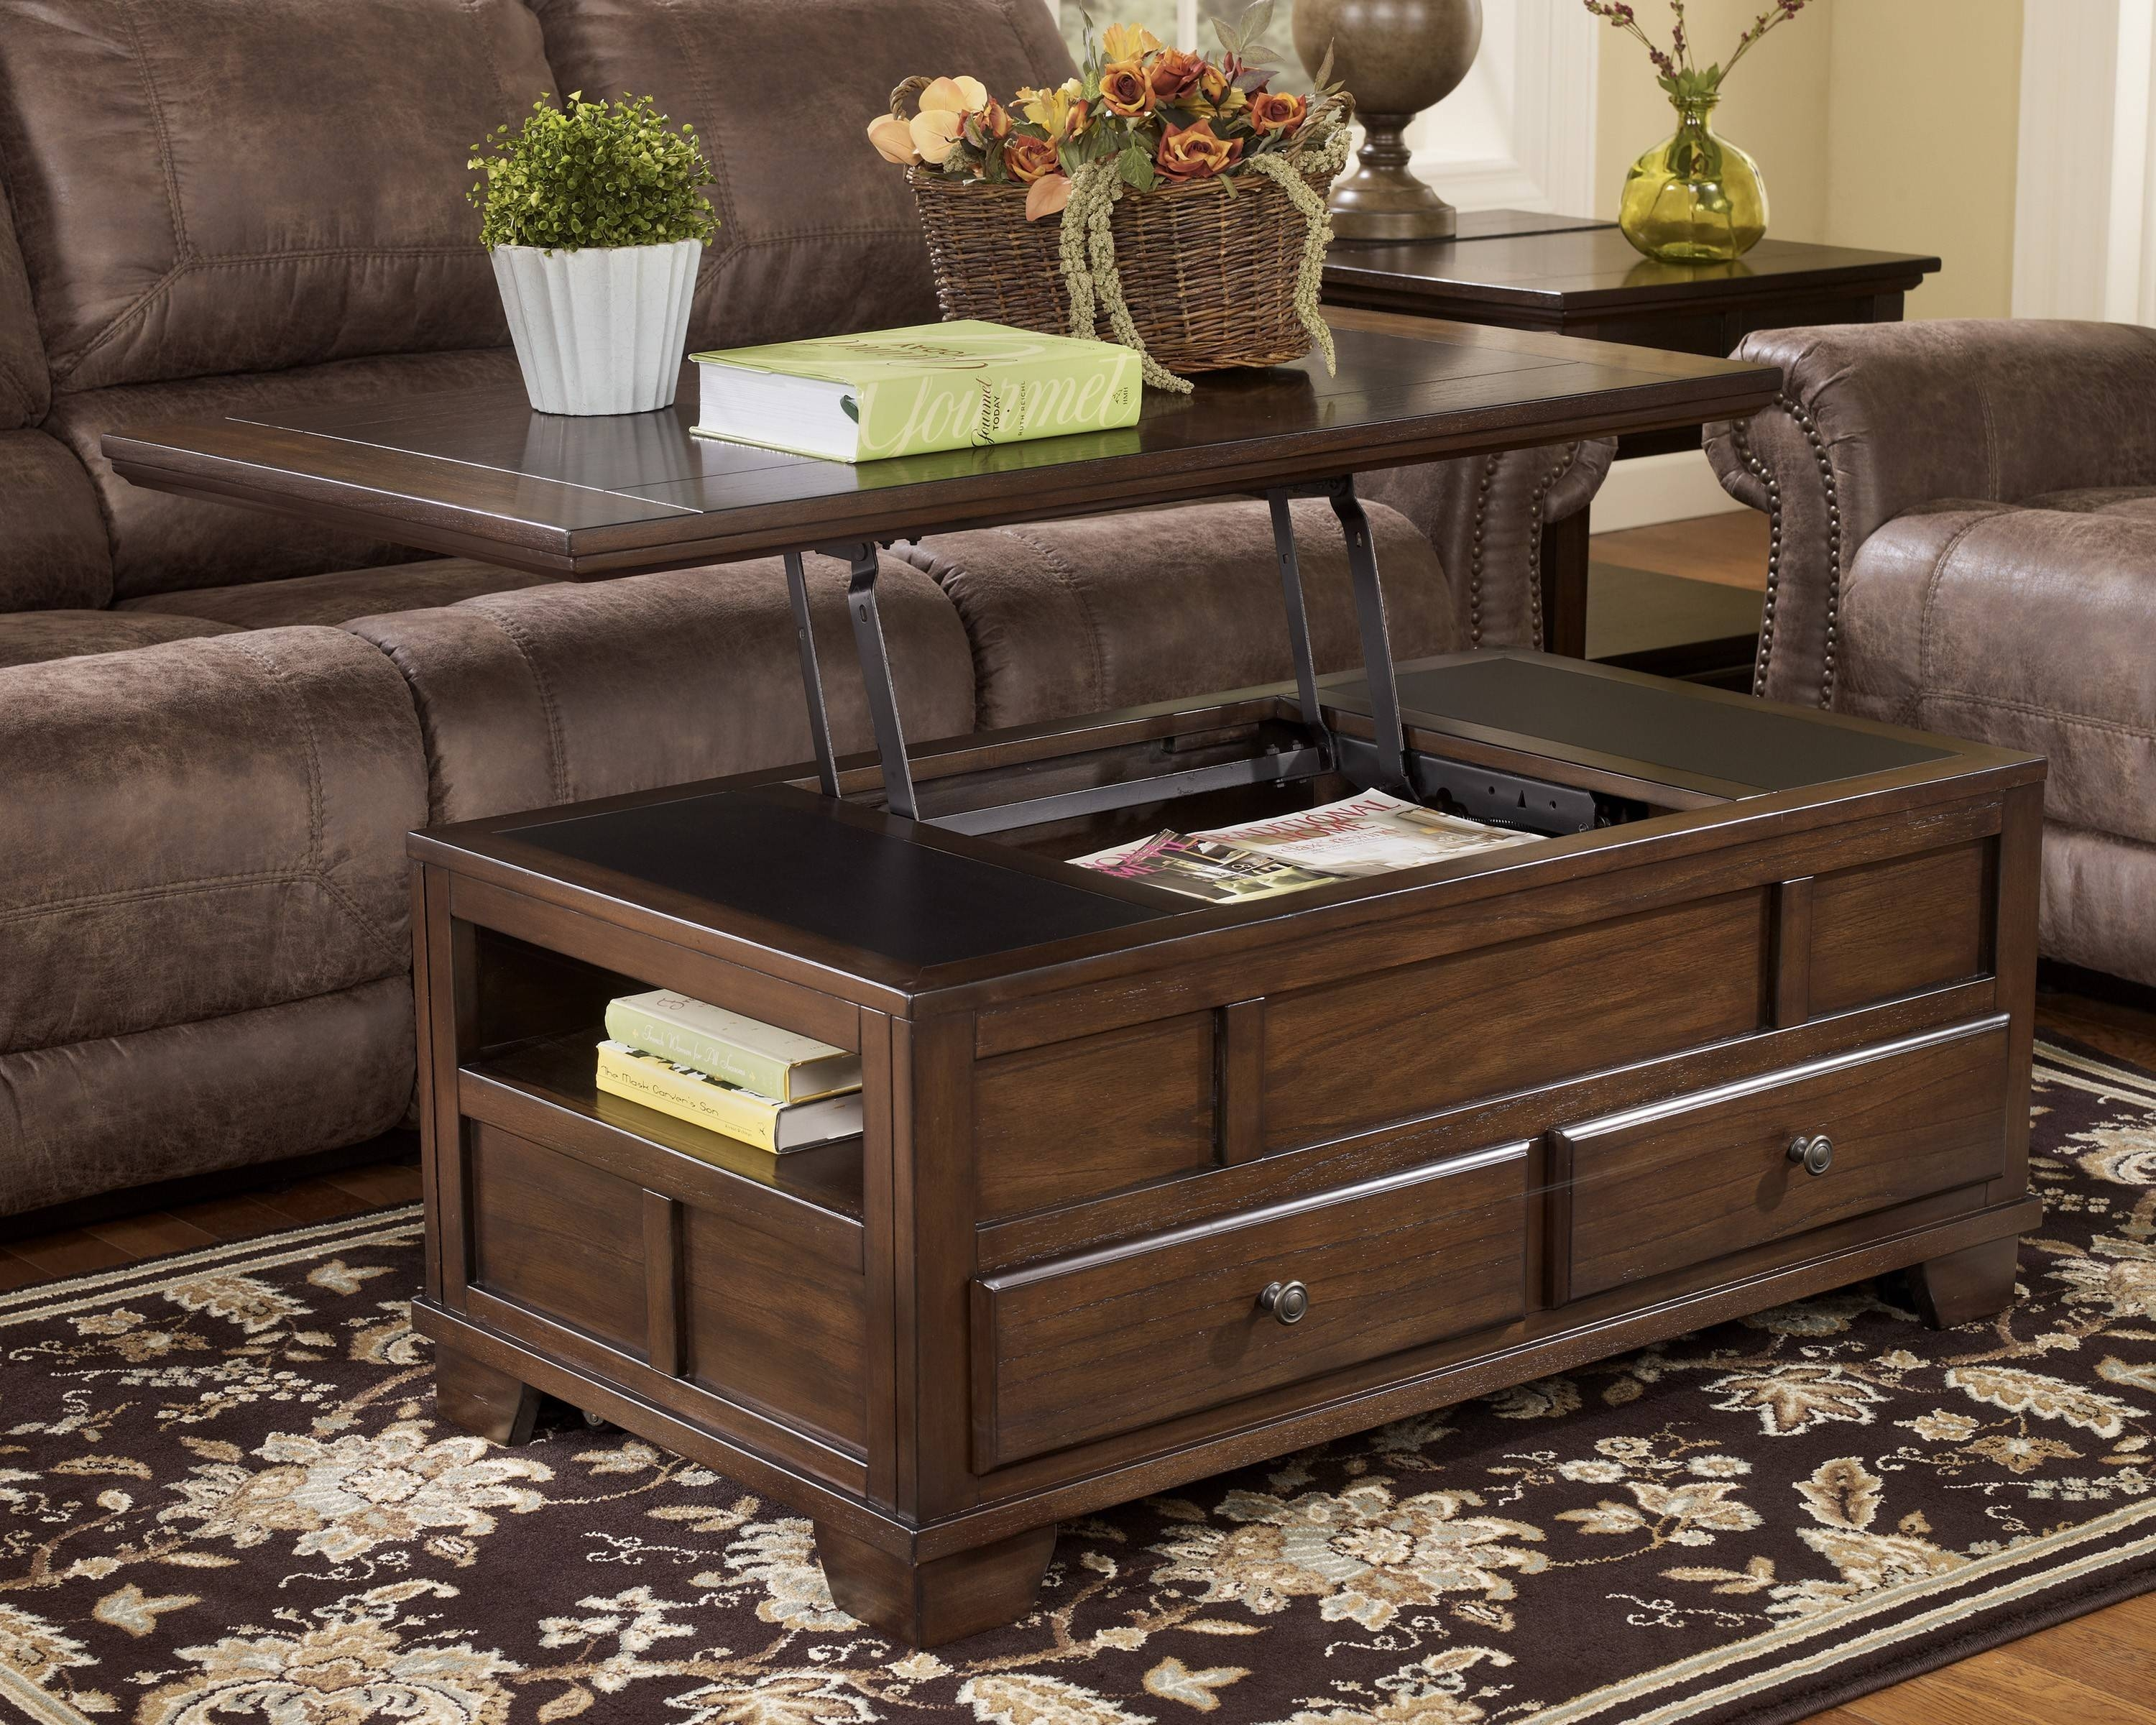 Brown Wooden Table With Double Drawers Also Shelf Combined With with regard to Square Coffee Tables With Drawers (Image 3 of 30)